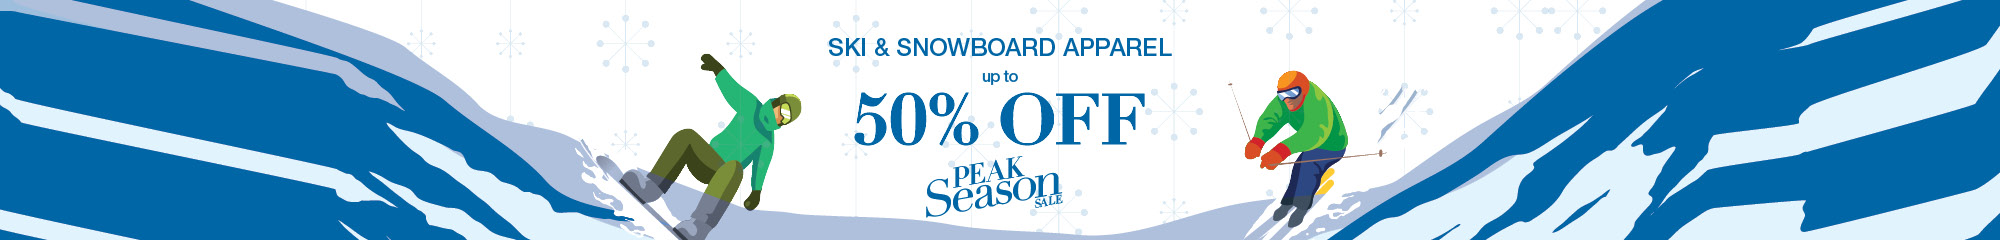 Shop Ski & Snowboard Apparel Up to 50% Off